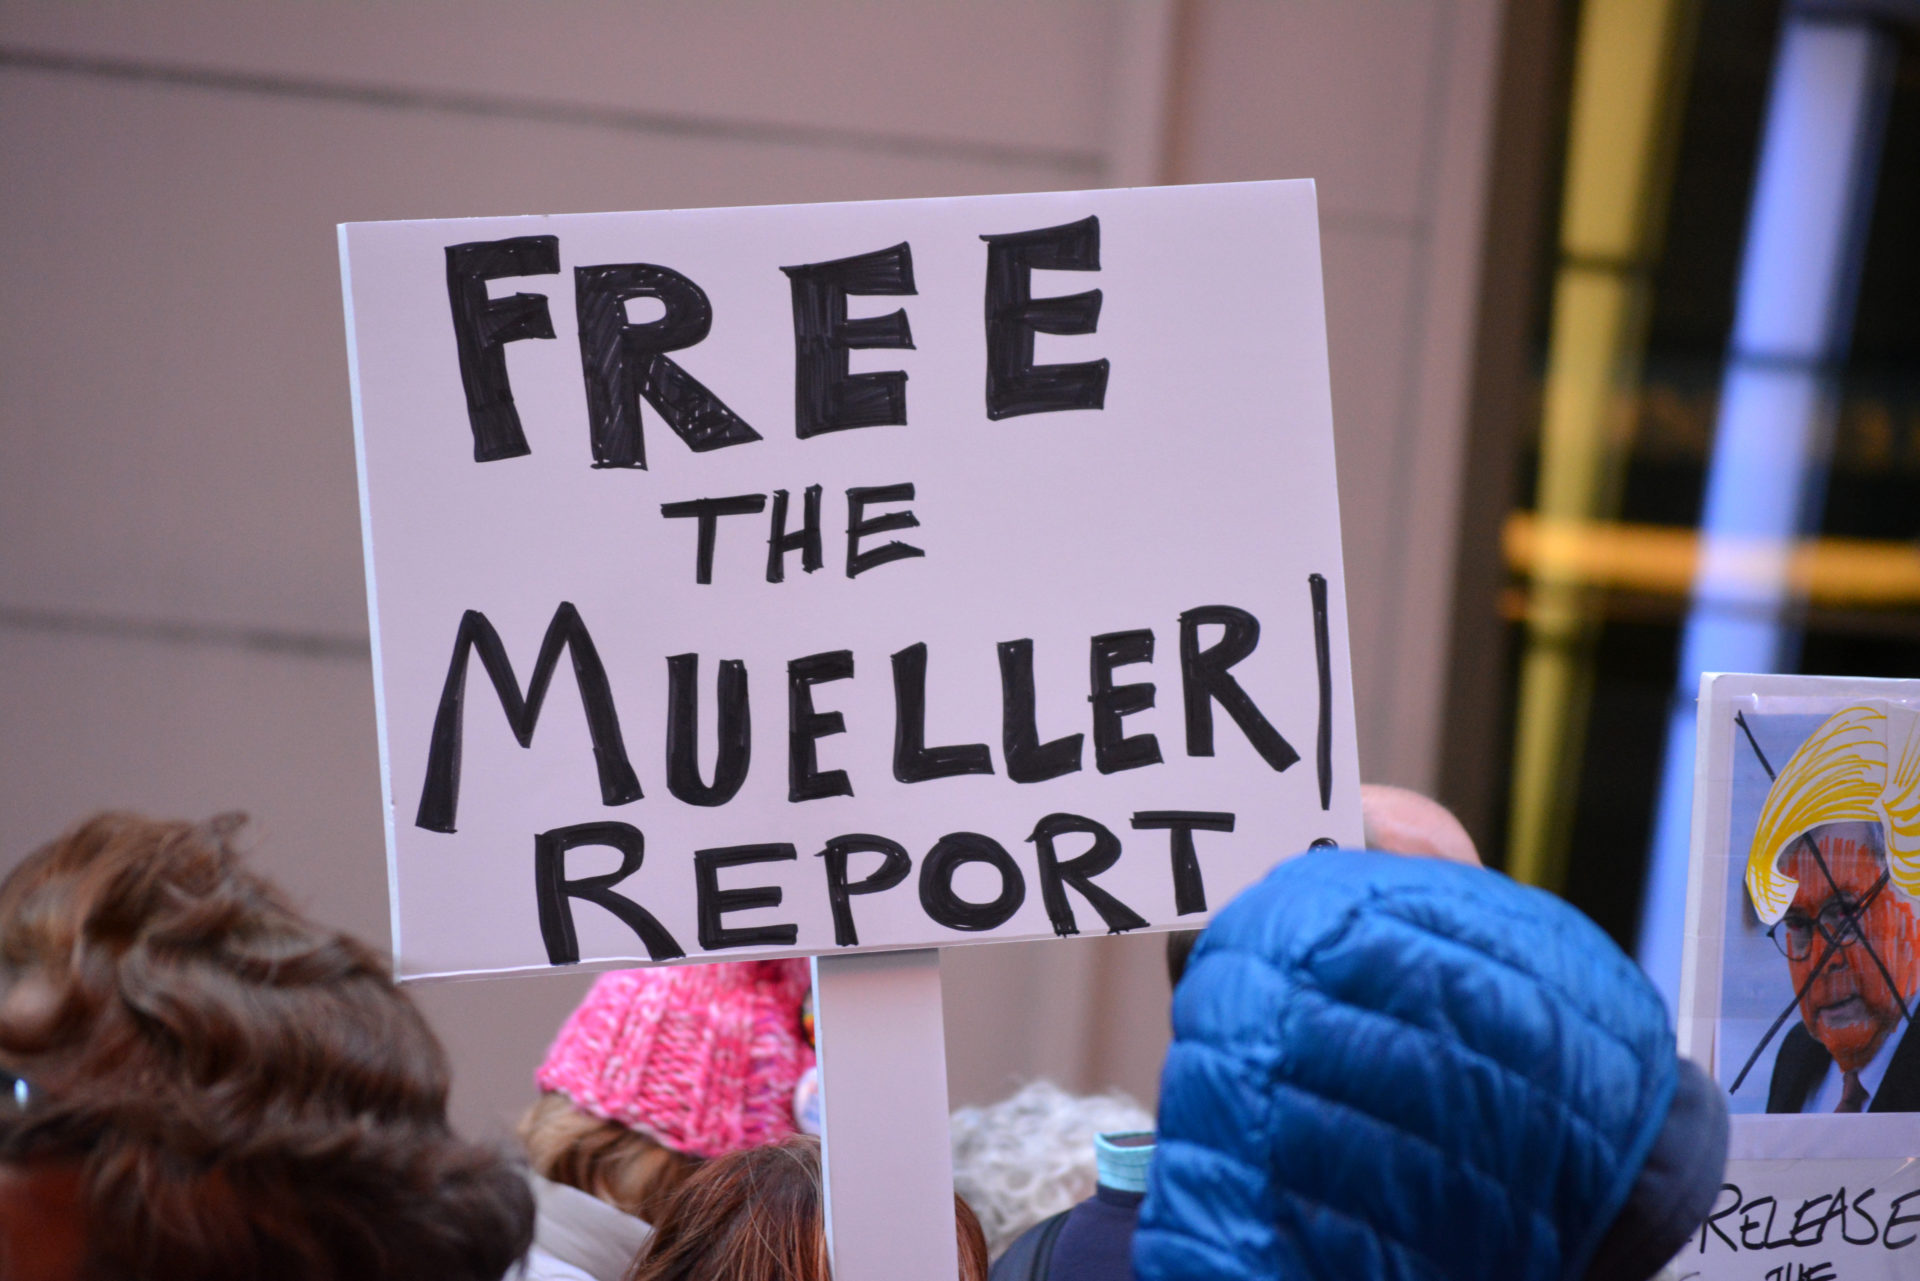 Deadline for unredacted Mueller report / Report highlights latest space threats / Forbes 30 Under 30 Asia revealed